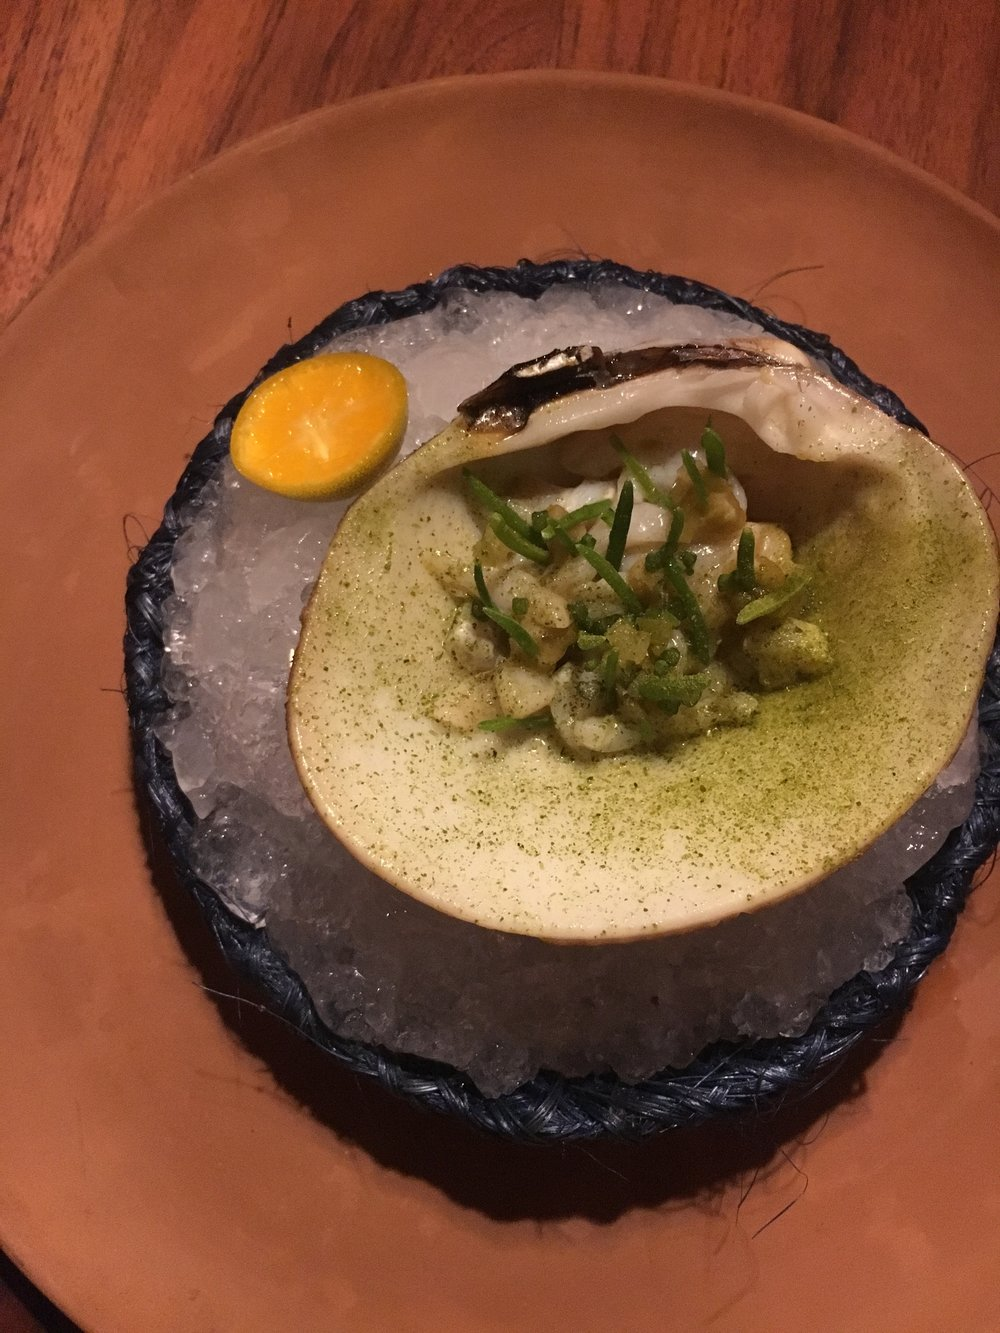 Melon clam with sea beans and a very sour little orange.